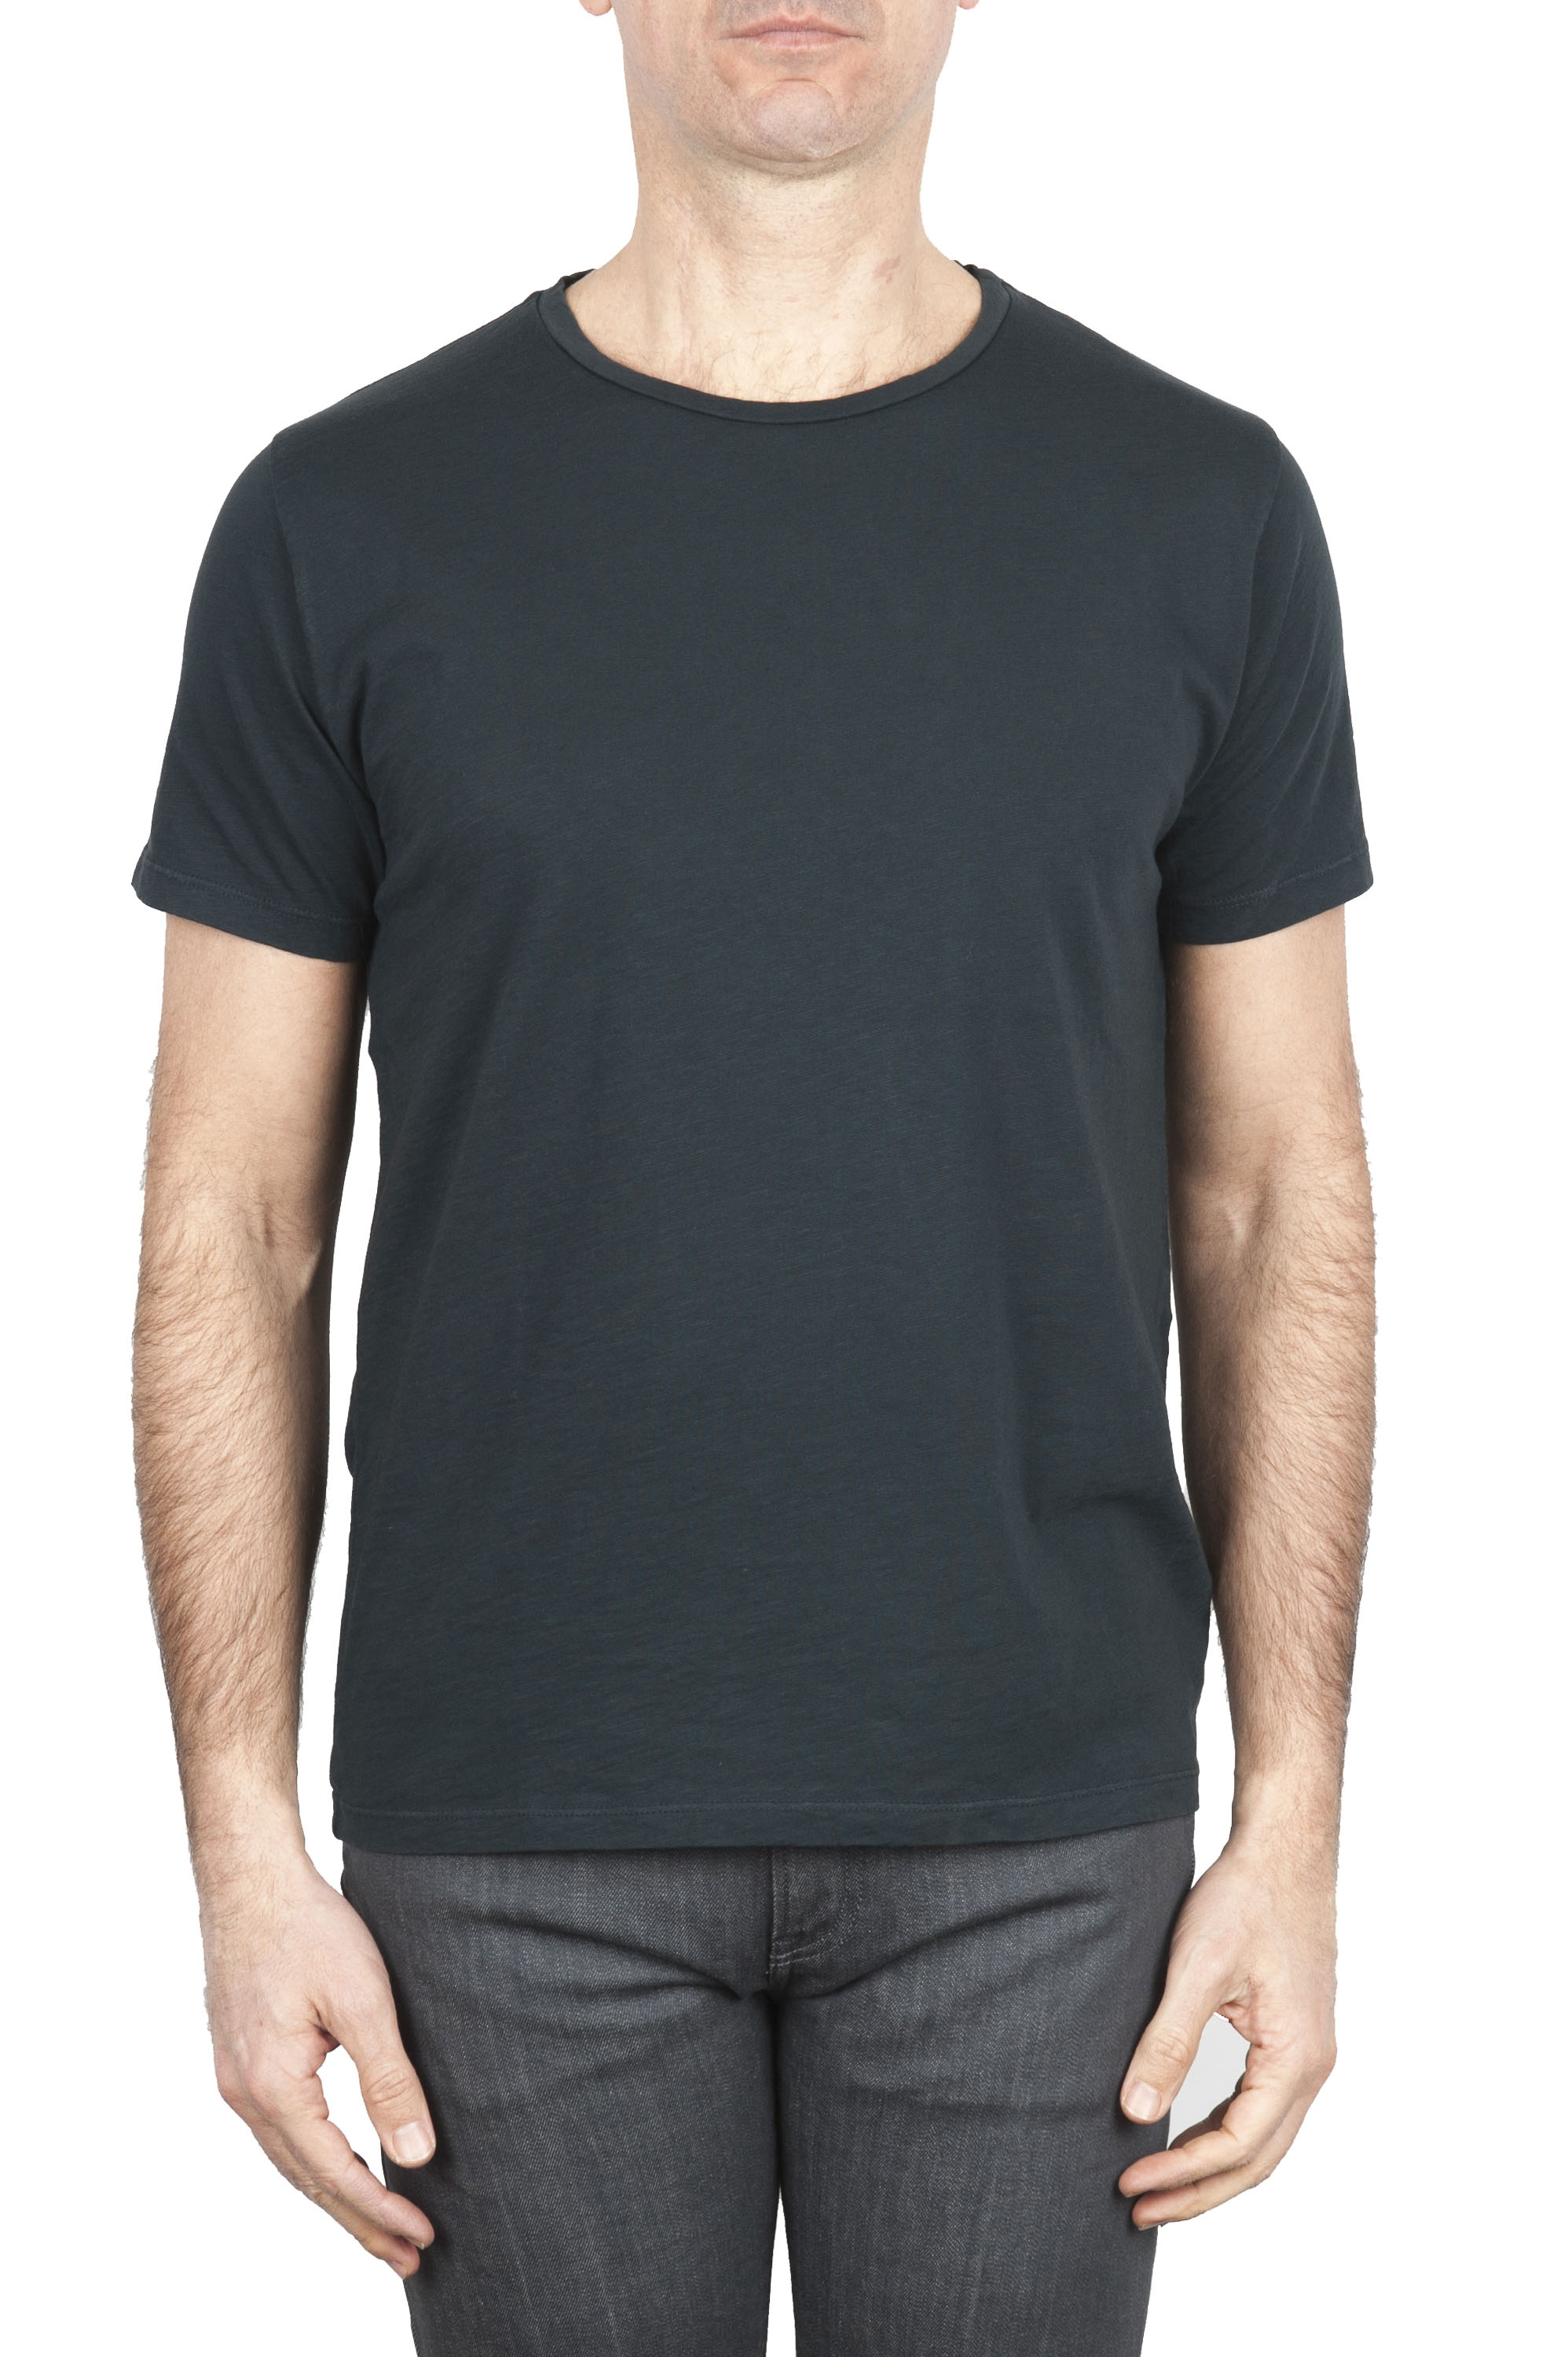 SBU 01636 Flamed cotton scoop neck t-shirt anthracite 01